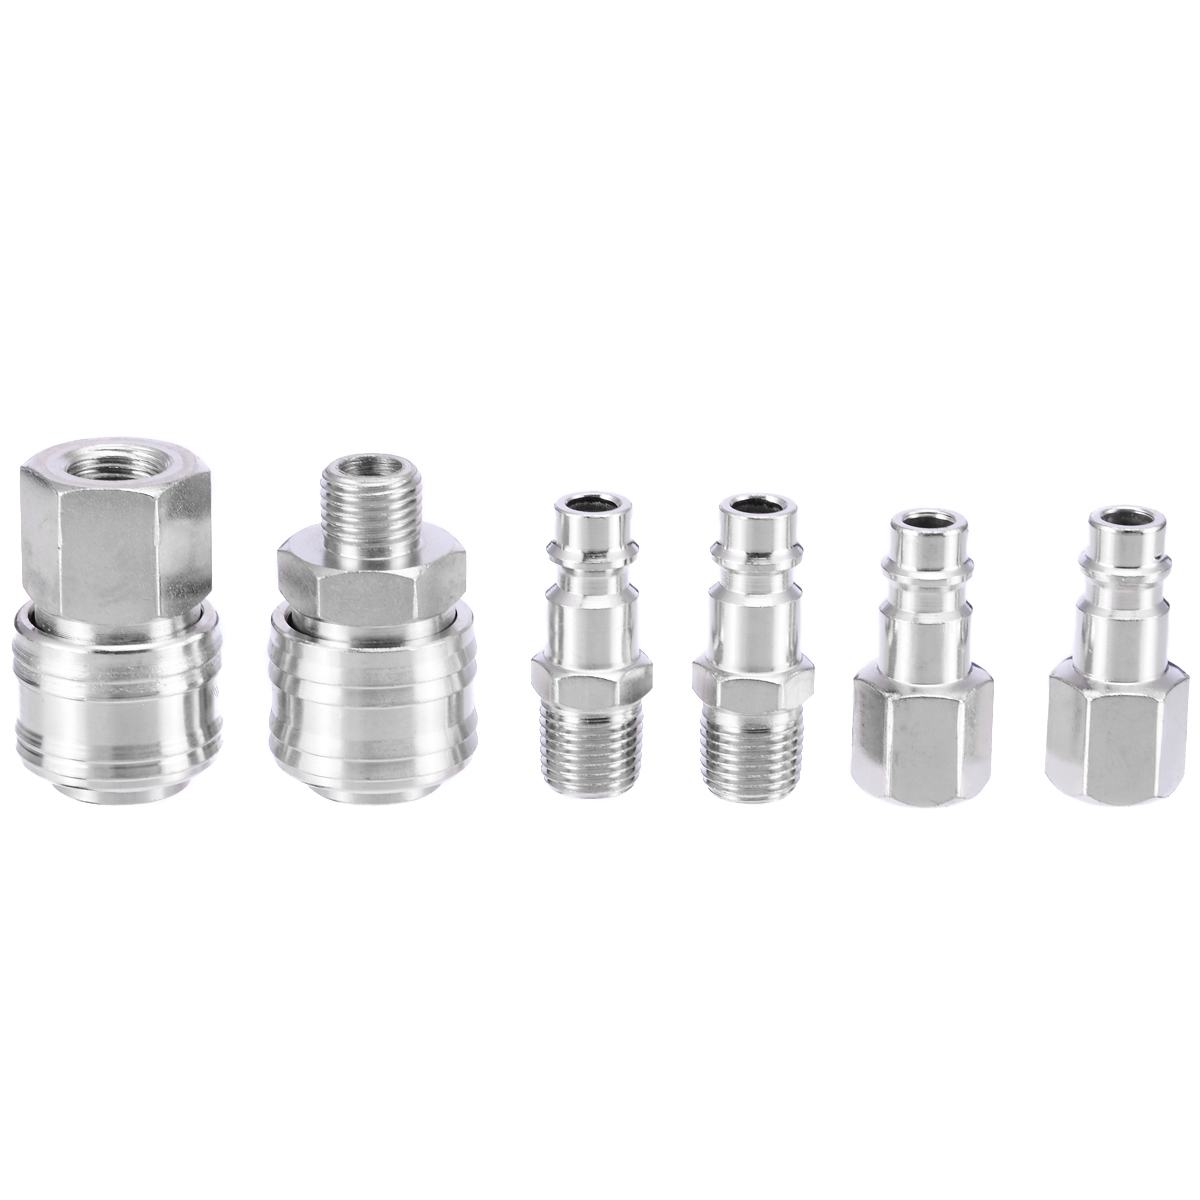 6pcs Mayitr Air Hose Compressor Connector Euro Fittings Male Quick Release Set with 1/4 BSP Thread 6pcs euro air hose compressor fittings connector female male quick release 1 4 bsp thread